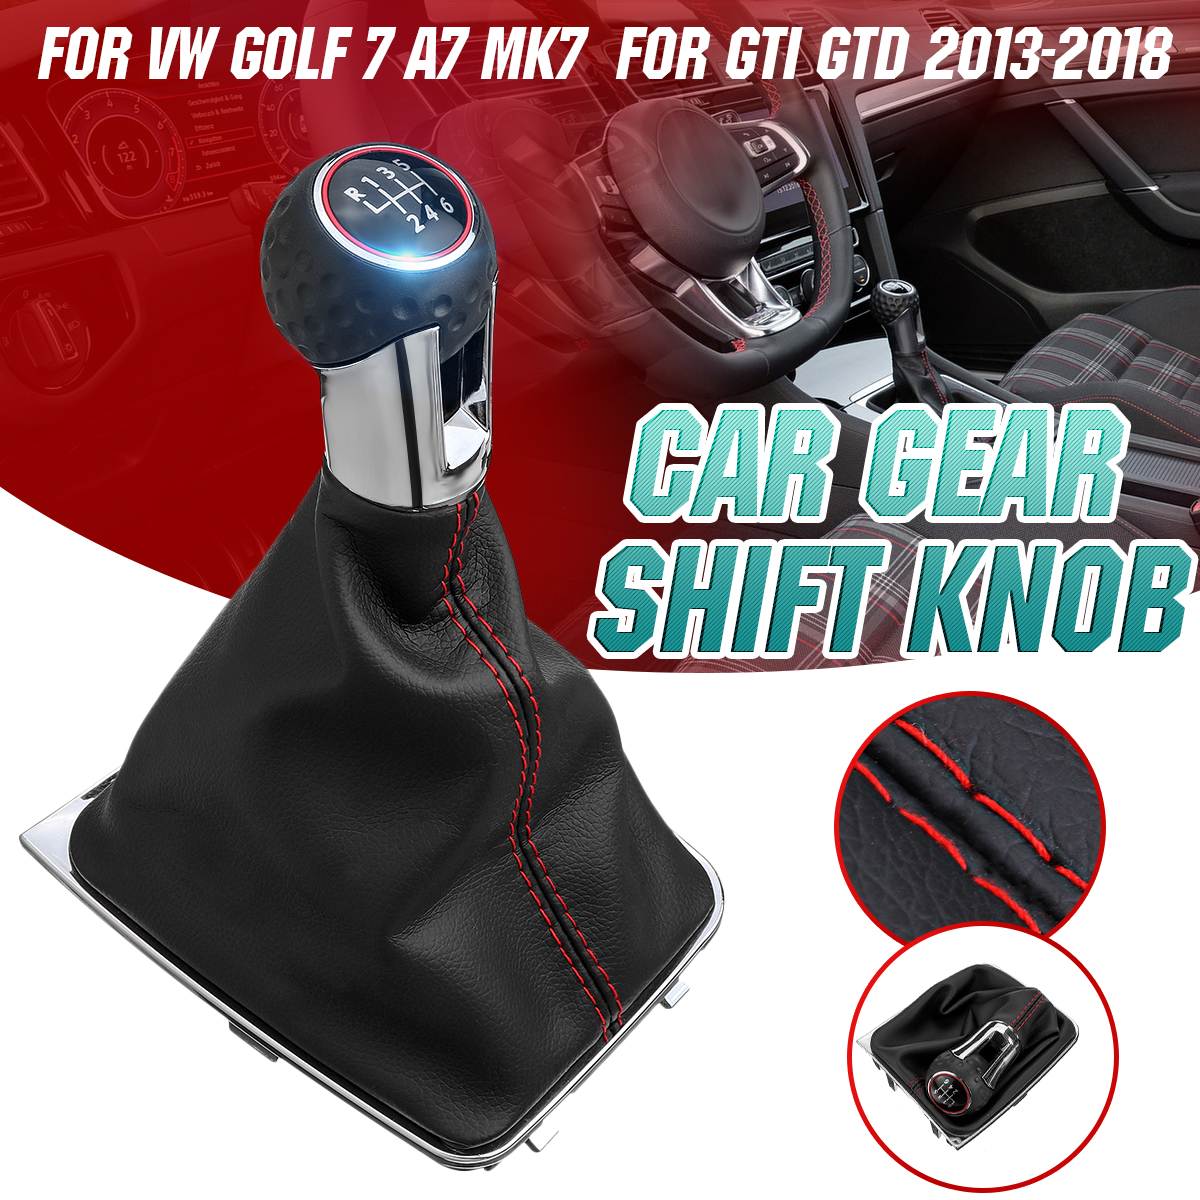 <font><b>6</b></font> Speed Car Gear Shift Knob Leather Gaiter Boot Cover Lever Shifter Collar For <font><b>VW</b></font> <font><b>Golf</b></font> 7 A7 MK7 For GTI <font><b>GTD</b></font> 2013-2018 image